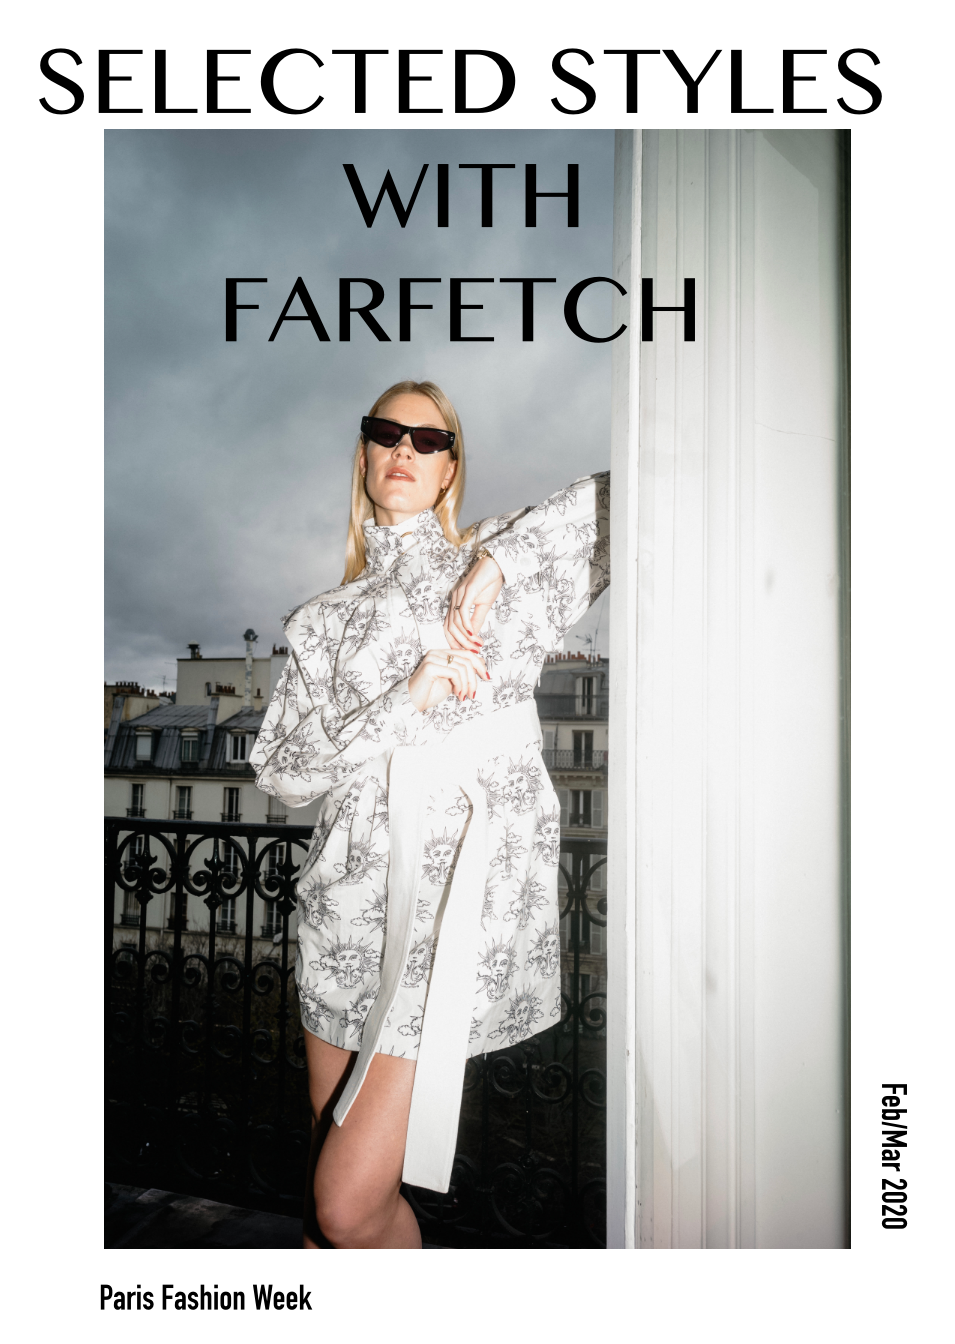 Fashion week Paris with Farfetch